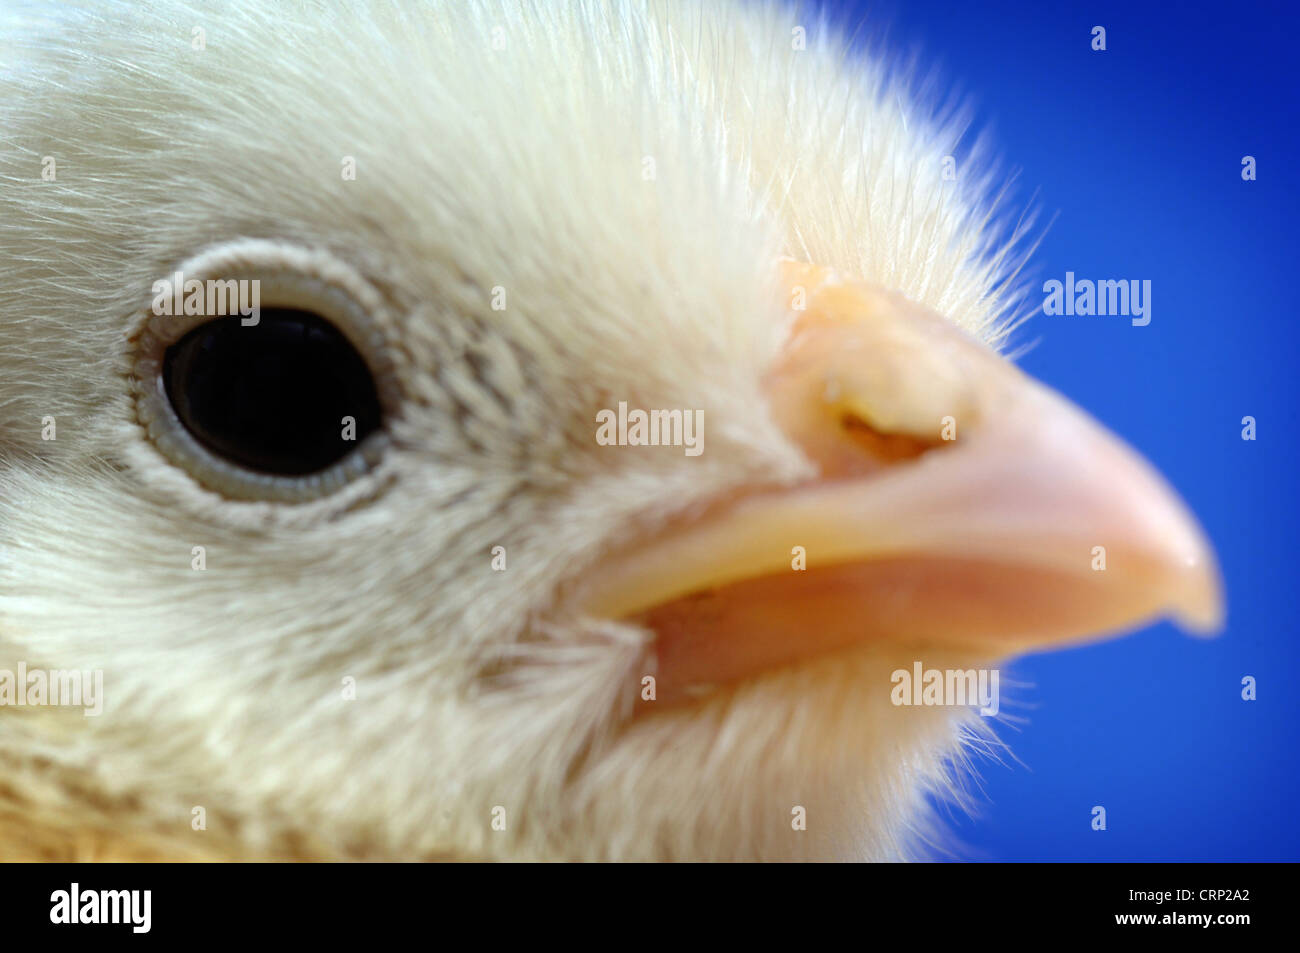 Close up of a chick just a few days old. Avian influenza is a contagious disease among birds which kills chickens - Stock Image